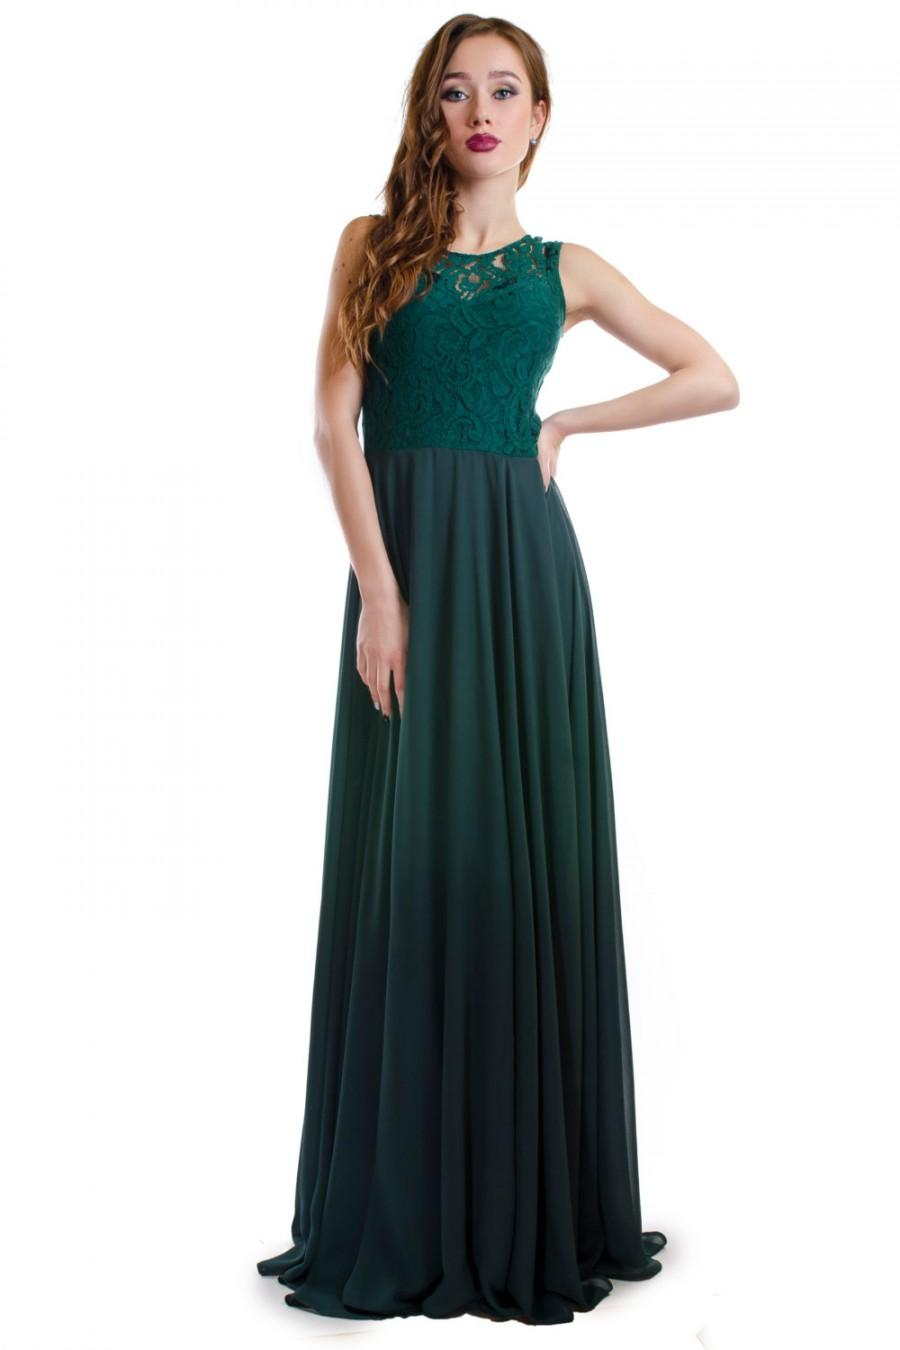 Boda - Long Sexy Prom Dark Dress Green Bridesmaids,Green Lace Chiffon Dress,cheap bridesmaid dress, Homecoming dress, custom size